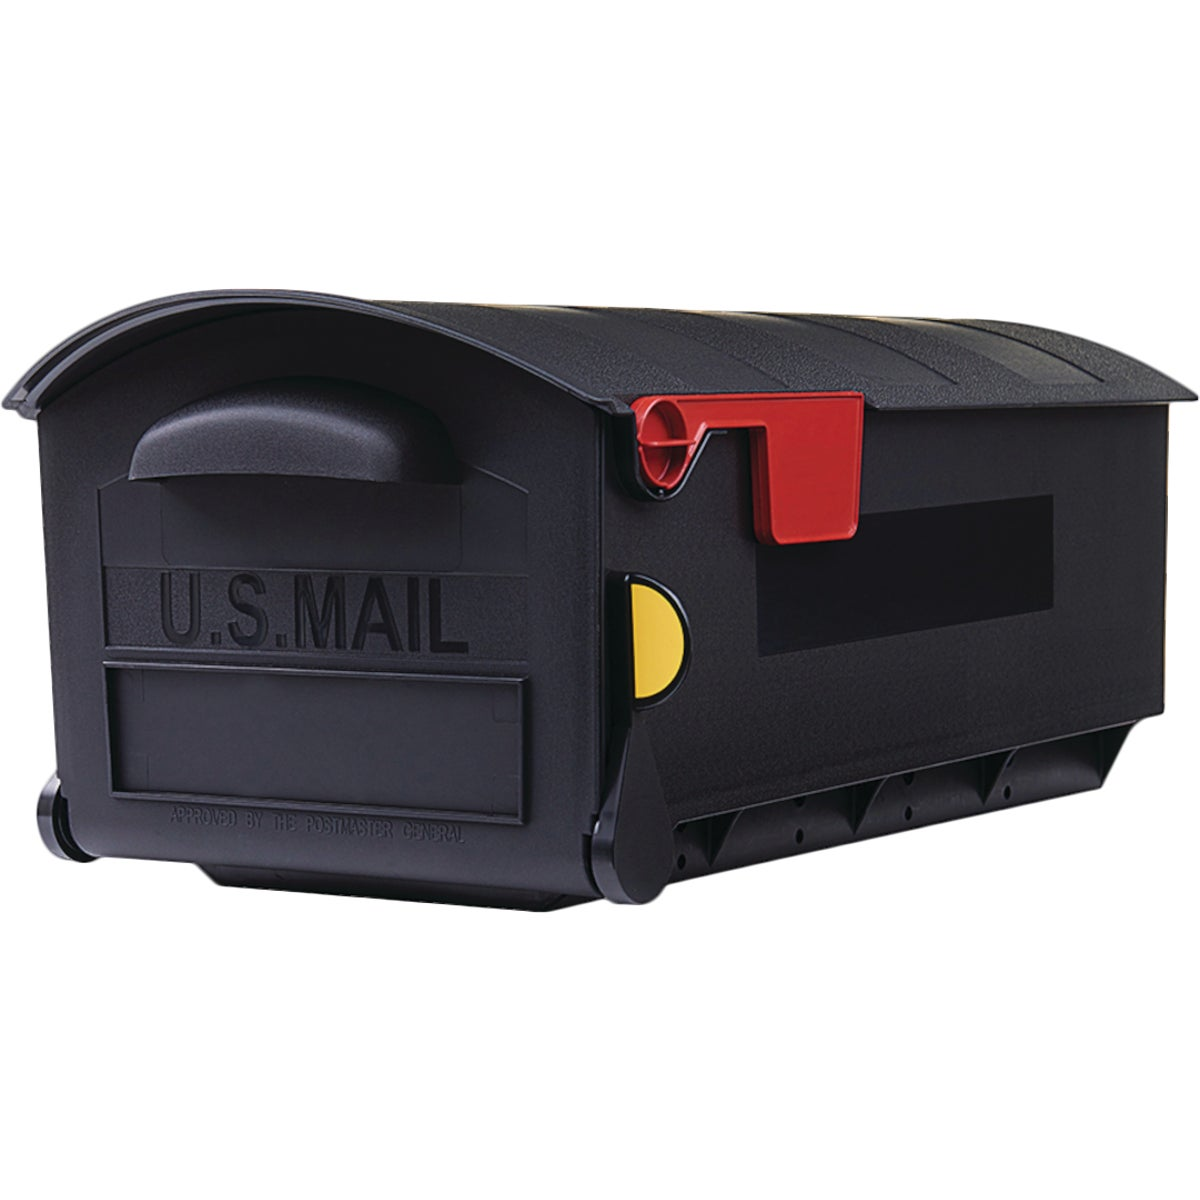 BLK C2 RUBBERMAID MAILBX - MB515B01 by Solar Group